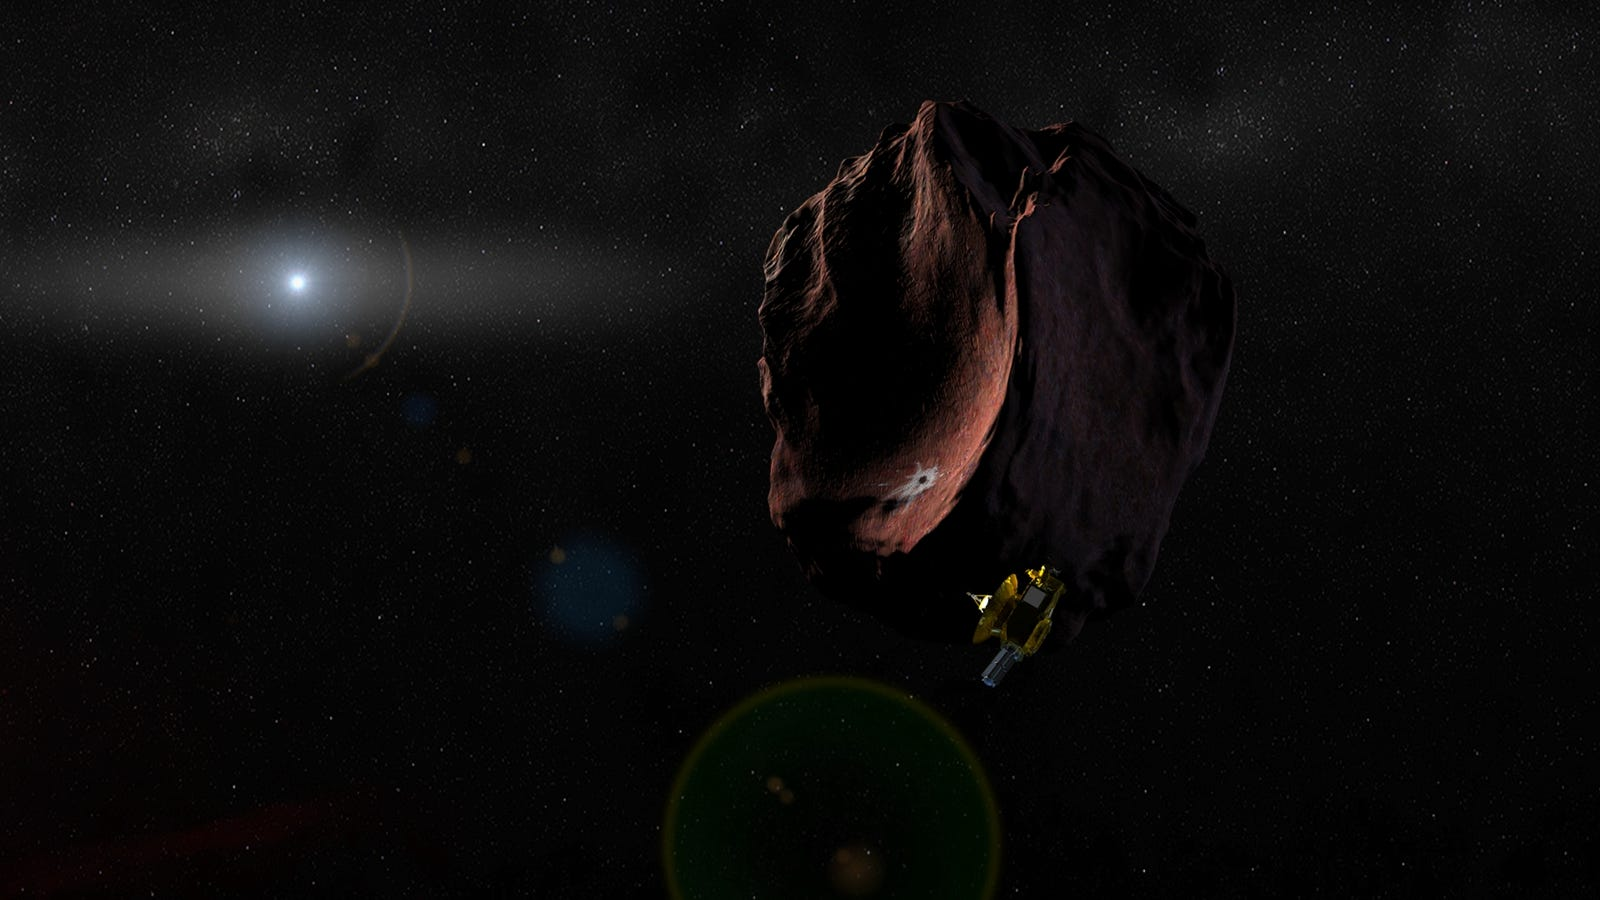 NASA Captures Impossible Glimpse of Kuiper Belt Object Billions of Miles Away